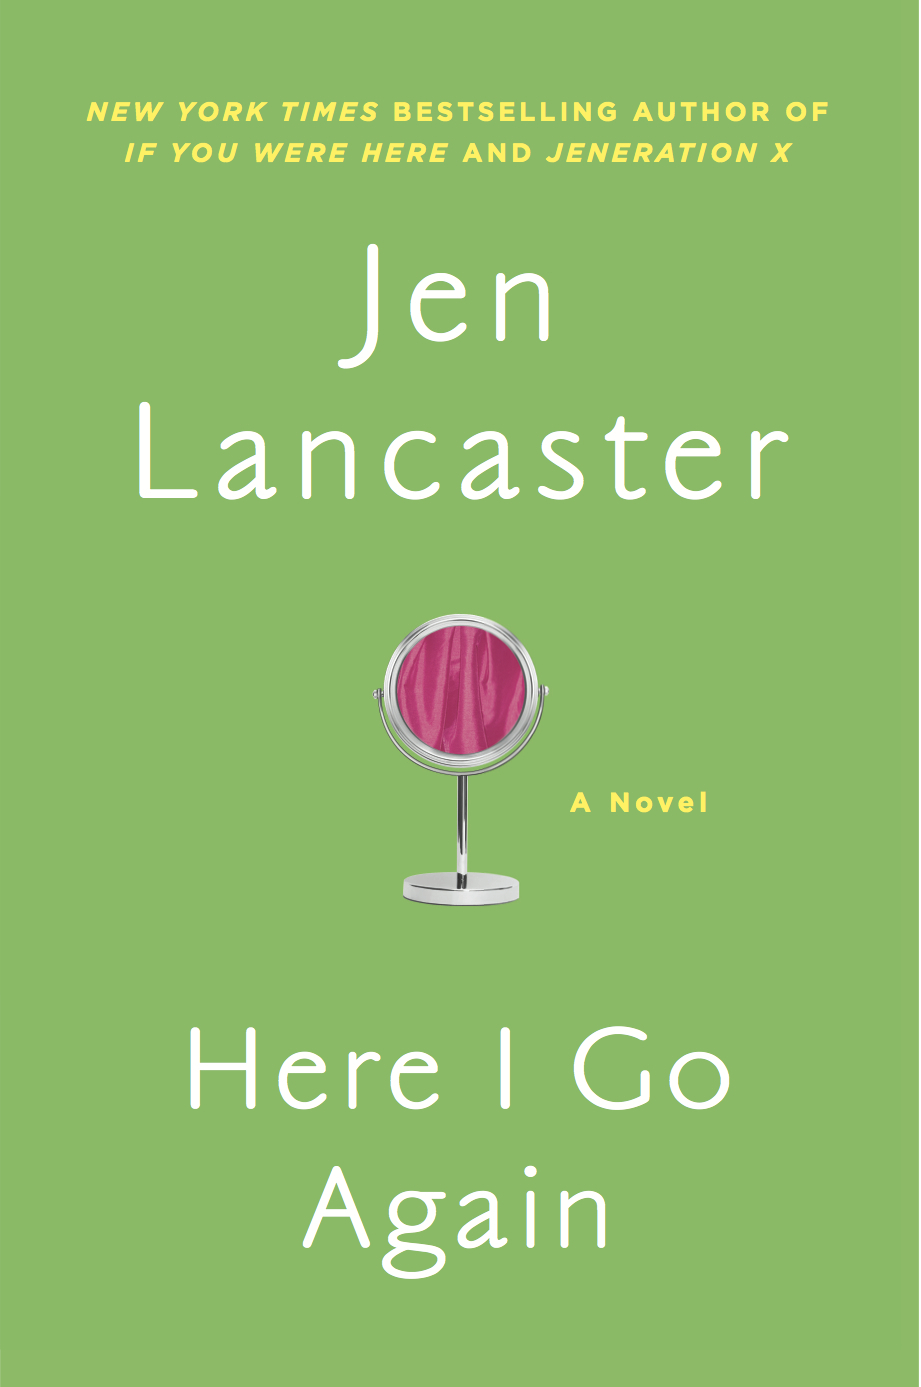 Here I Go Again by Jen Lancaster